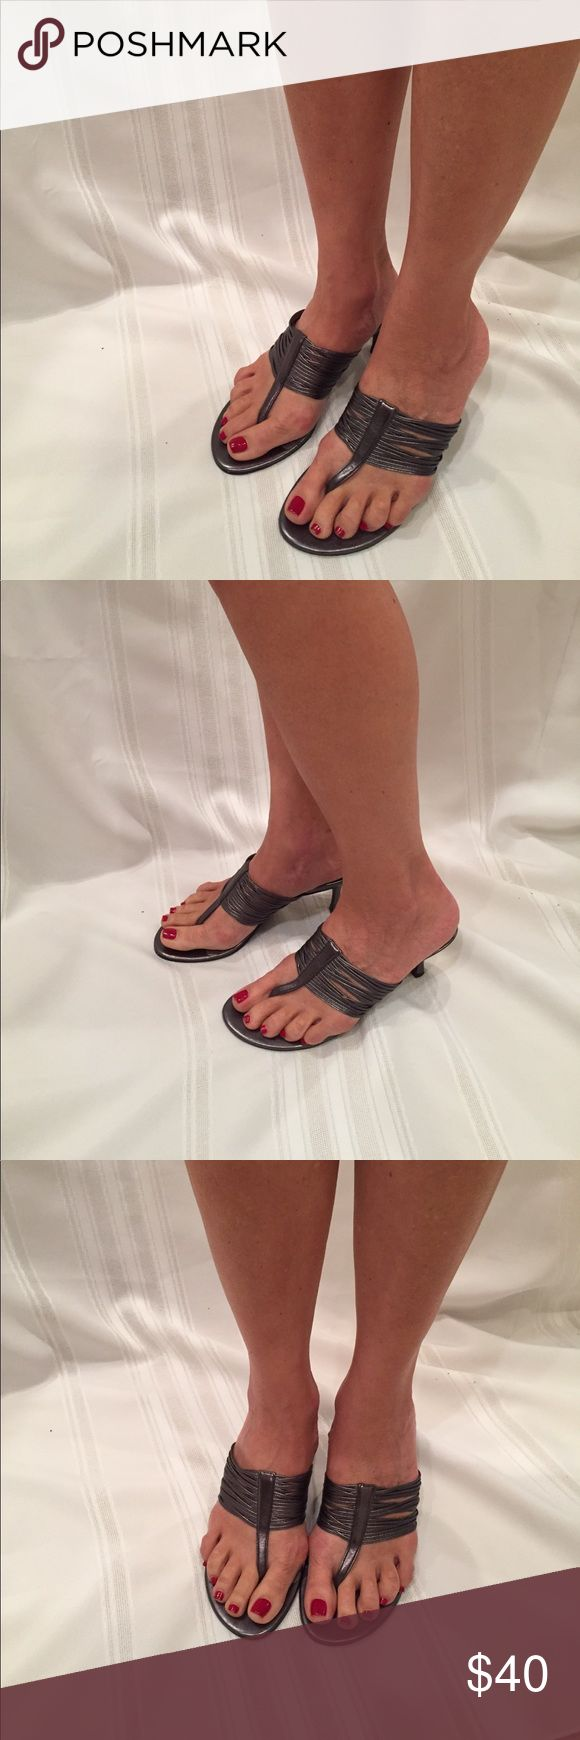 NWOT pewter sandals NWOT Moda spana sandals in pewter.  I have never worn these, but for some reason the instep is peeling a bit (see pic)....but you can't see it when the shoe is on.  They will look great on you! 😍 Moda Spana Shoes